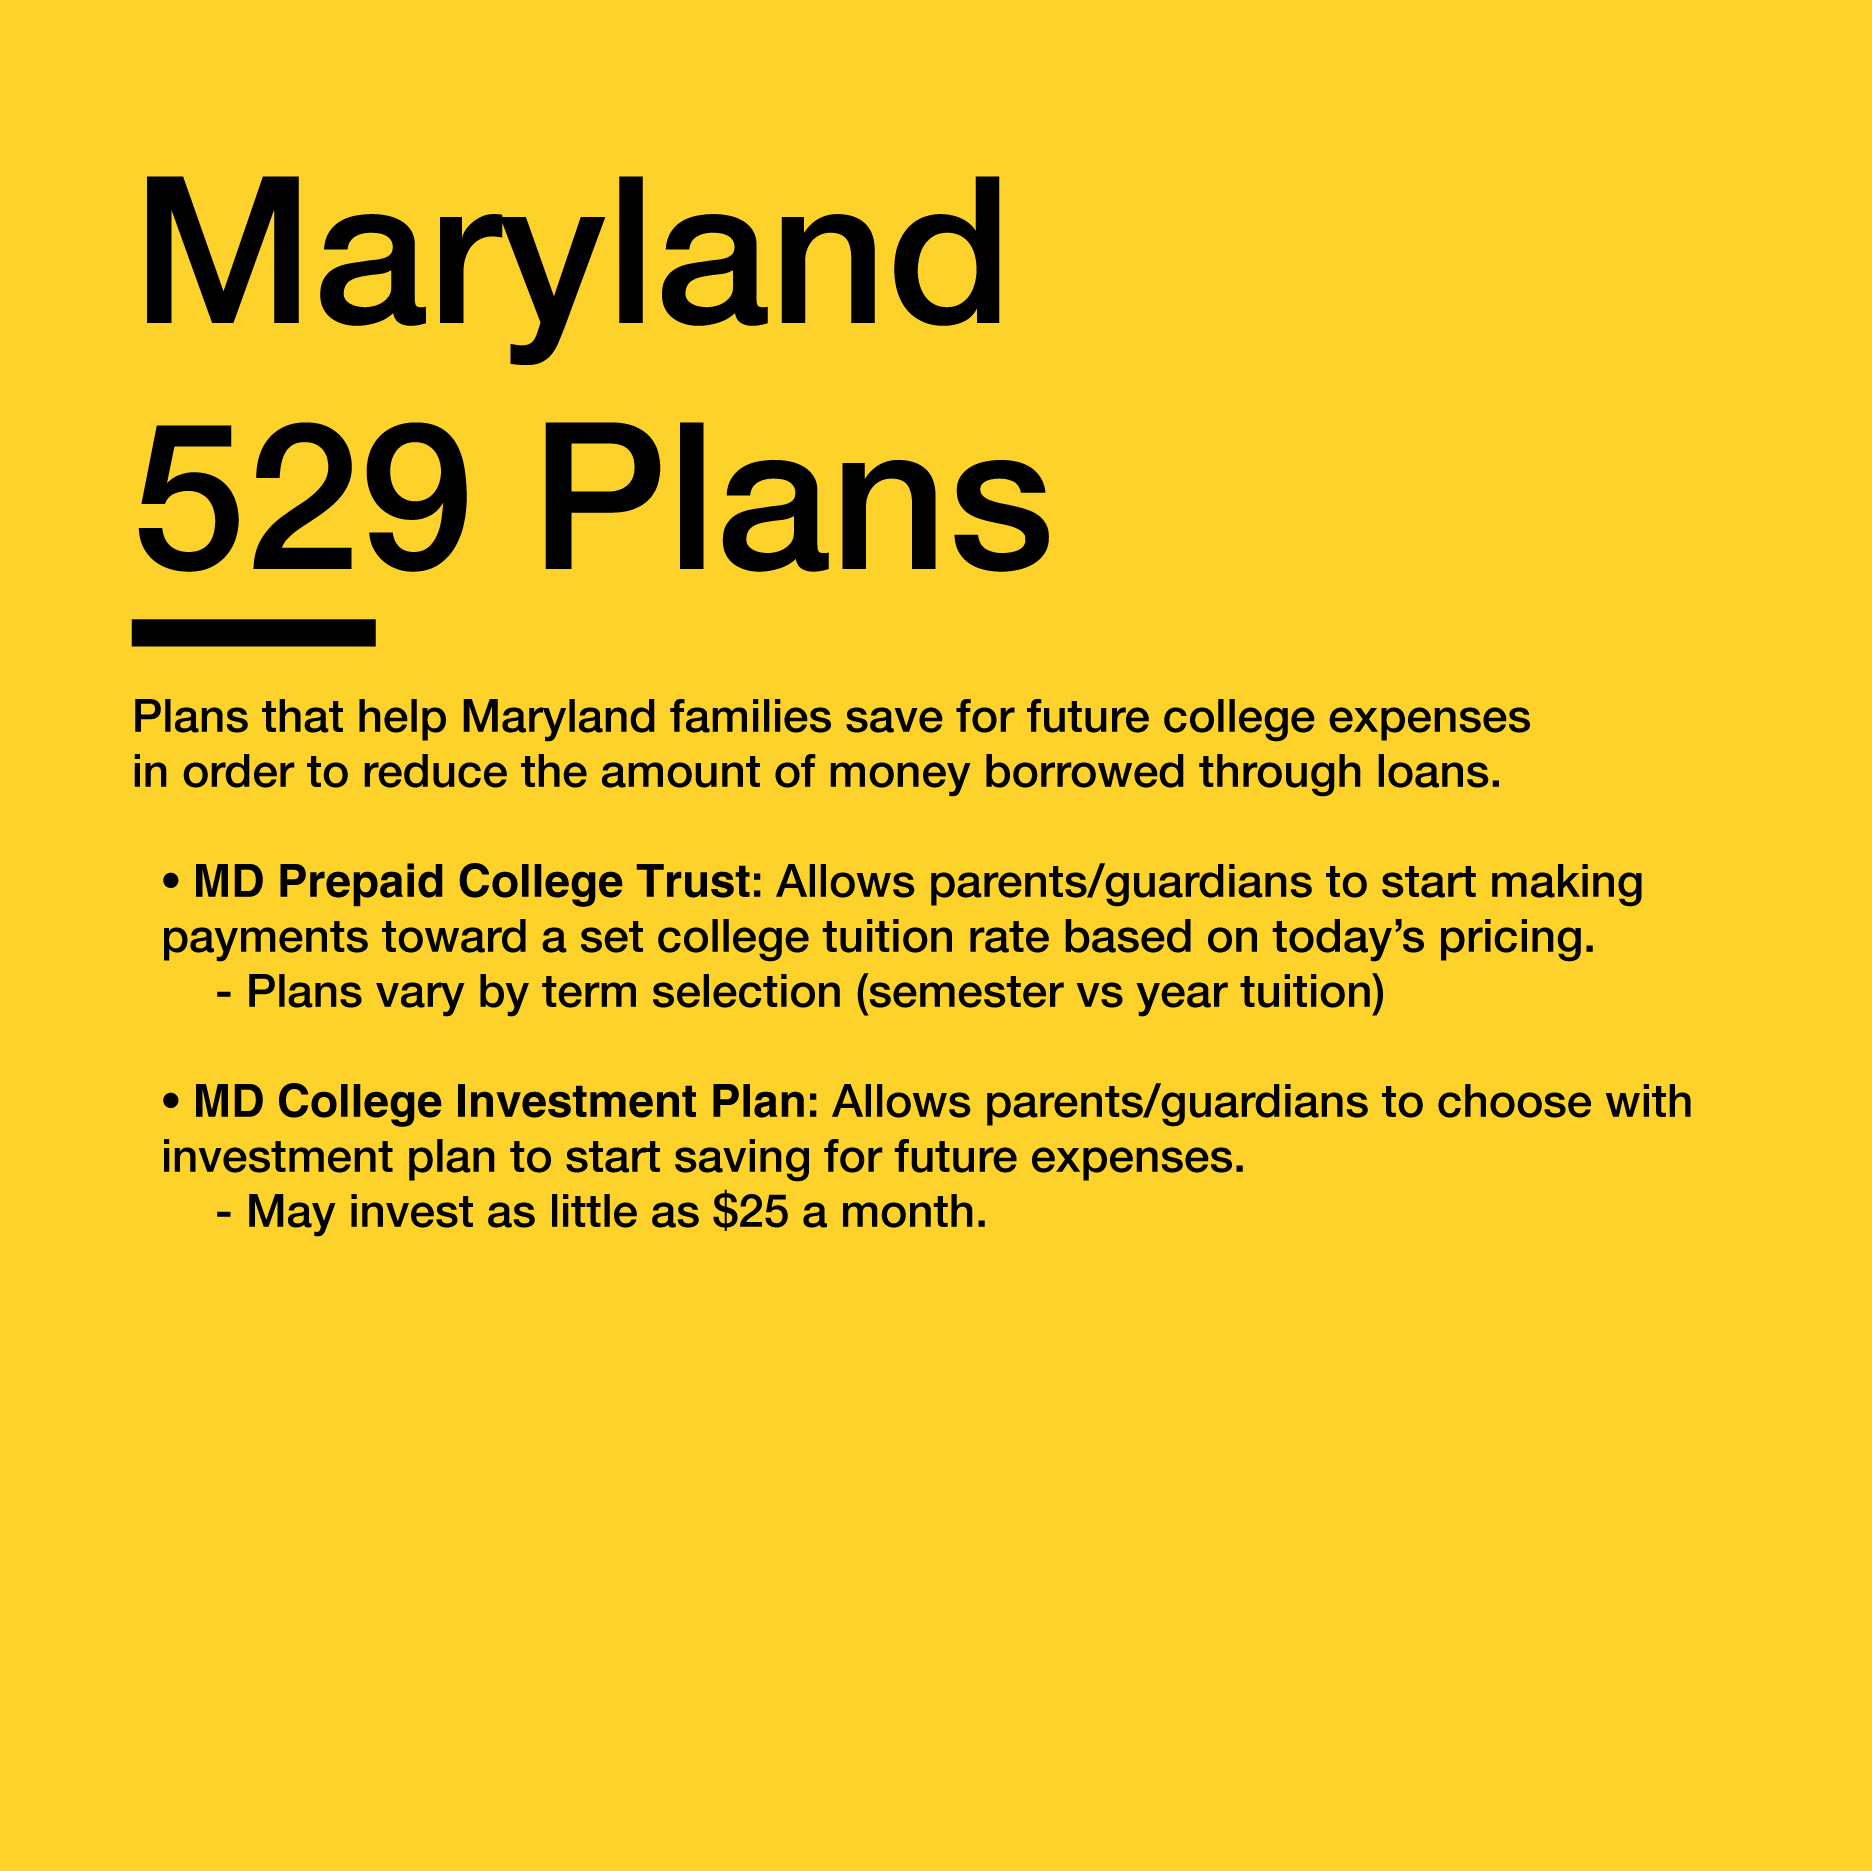 More Info   https://maryland529.com/md529plans